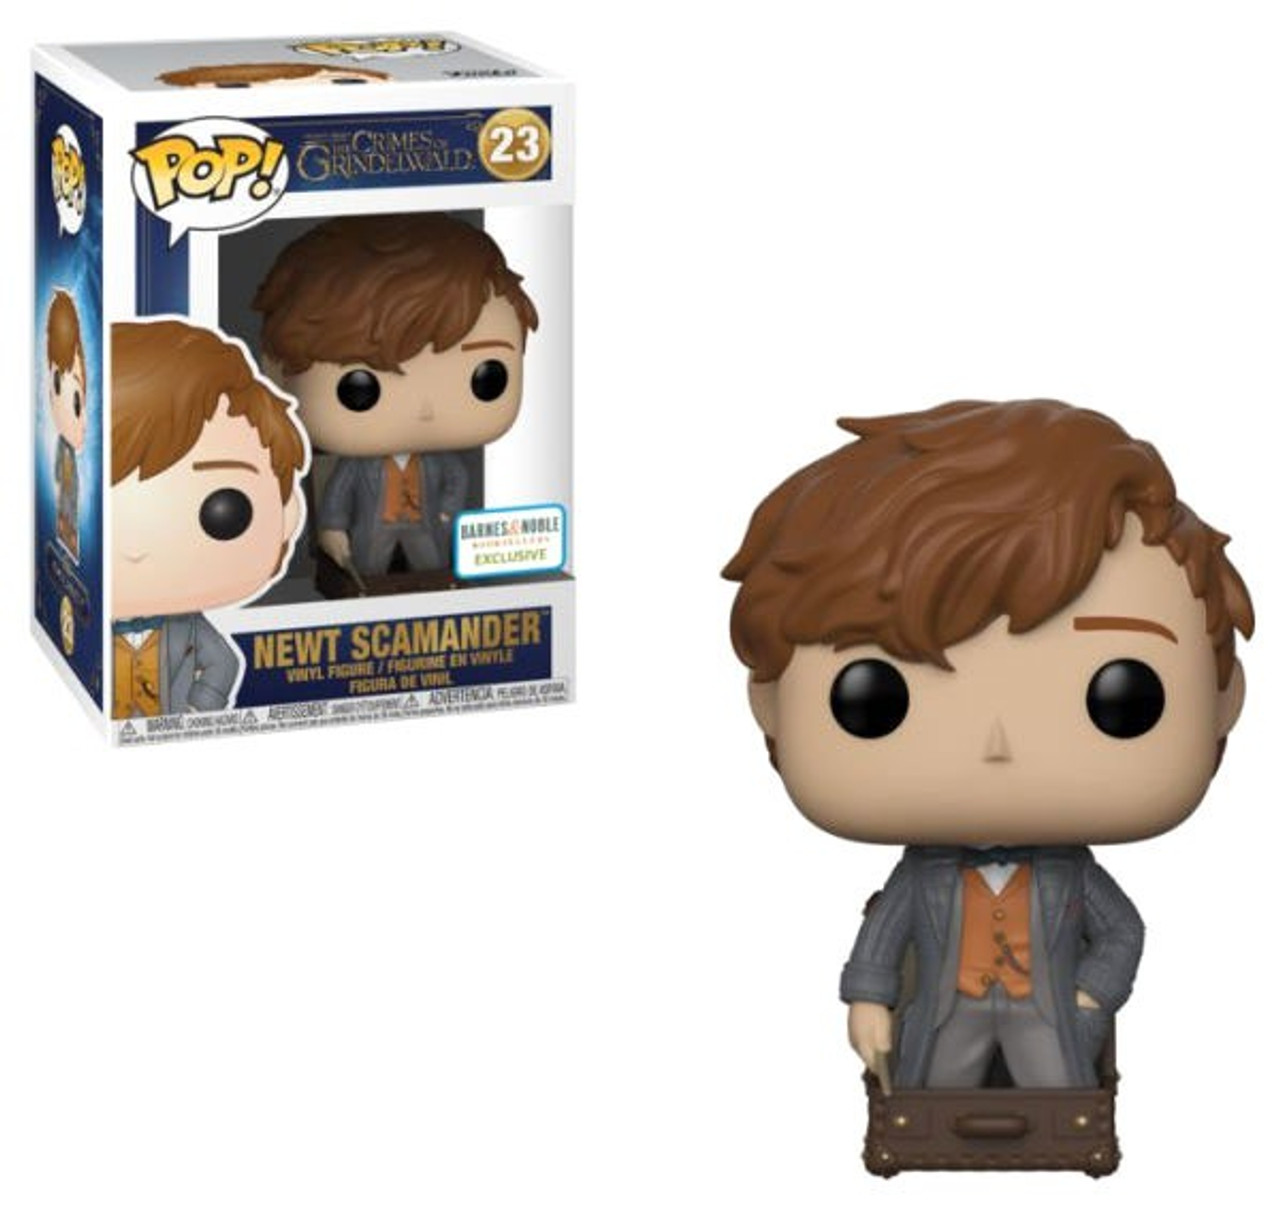 2521a6761ea Funko Harry Potter Fantastic Beasts The Crimes of Grindelwald Funko POP  Movies Newt Scamander Exclusive Vinyl Figure 23 in Suitcase - ToyWiz